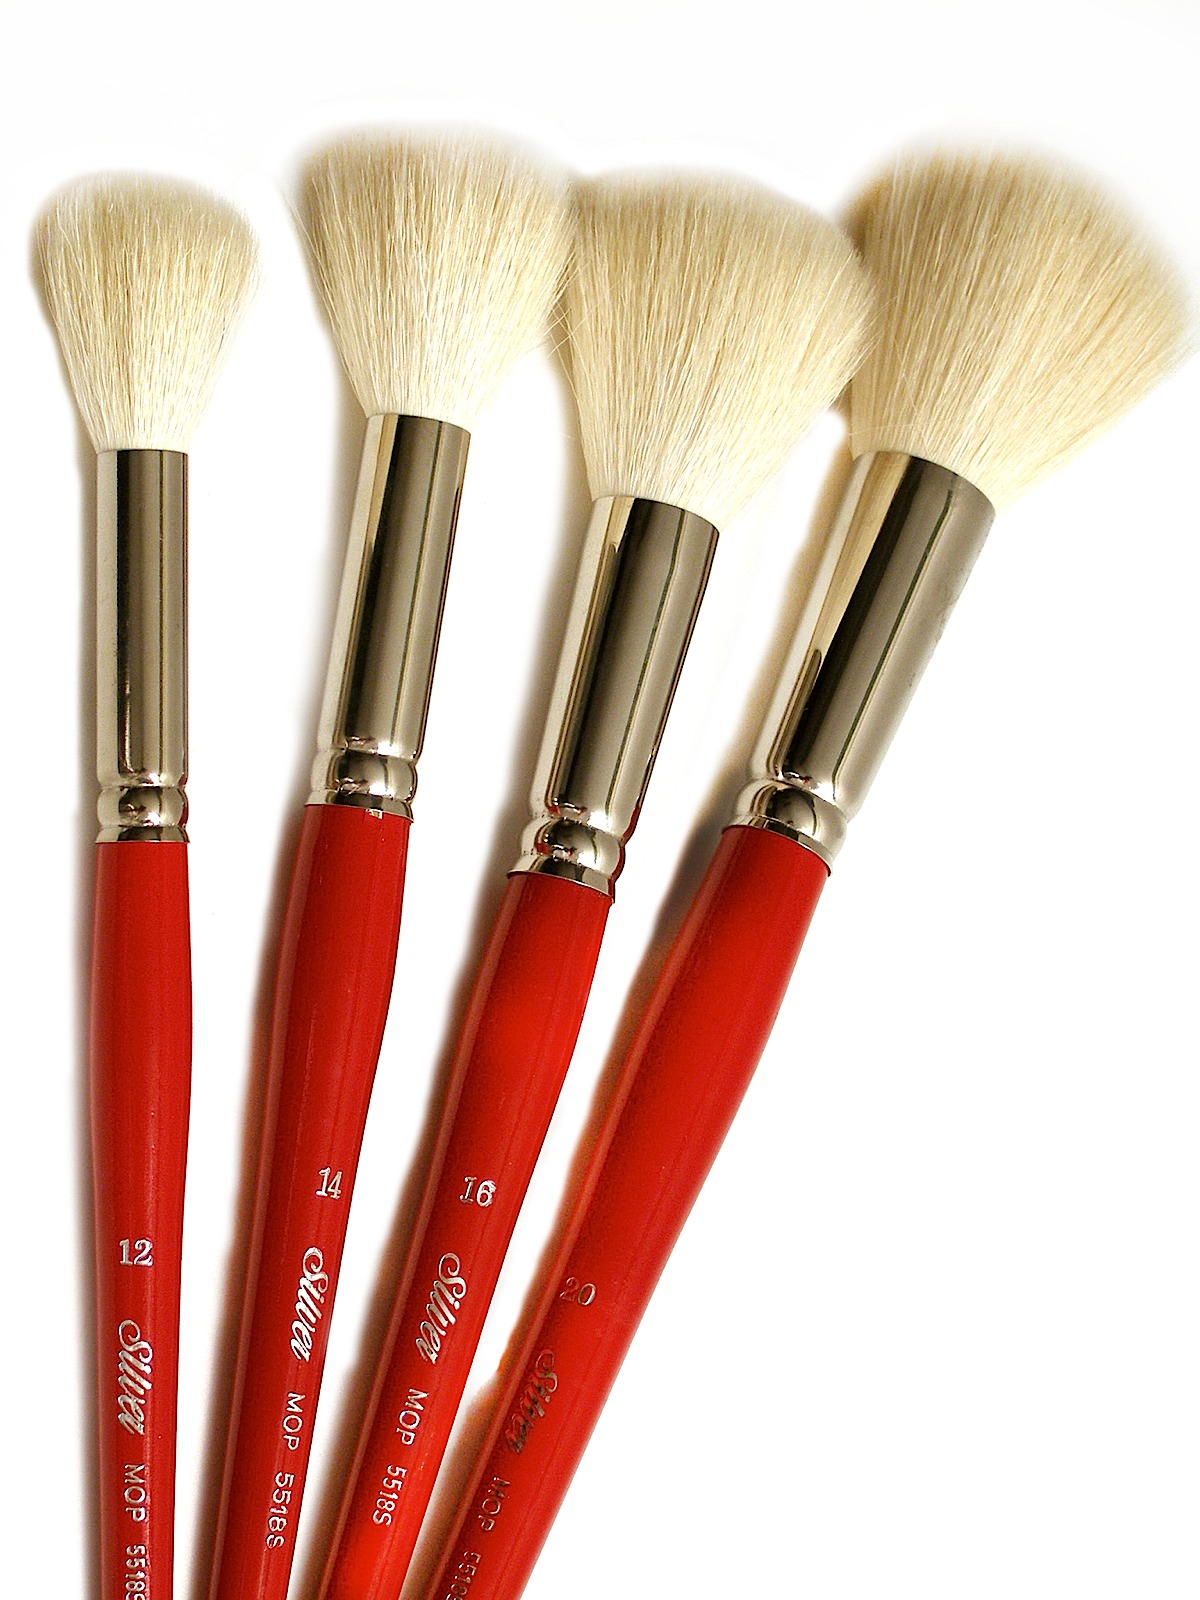 Silver Brush White Round Oval Mop Brushes